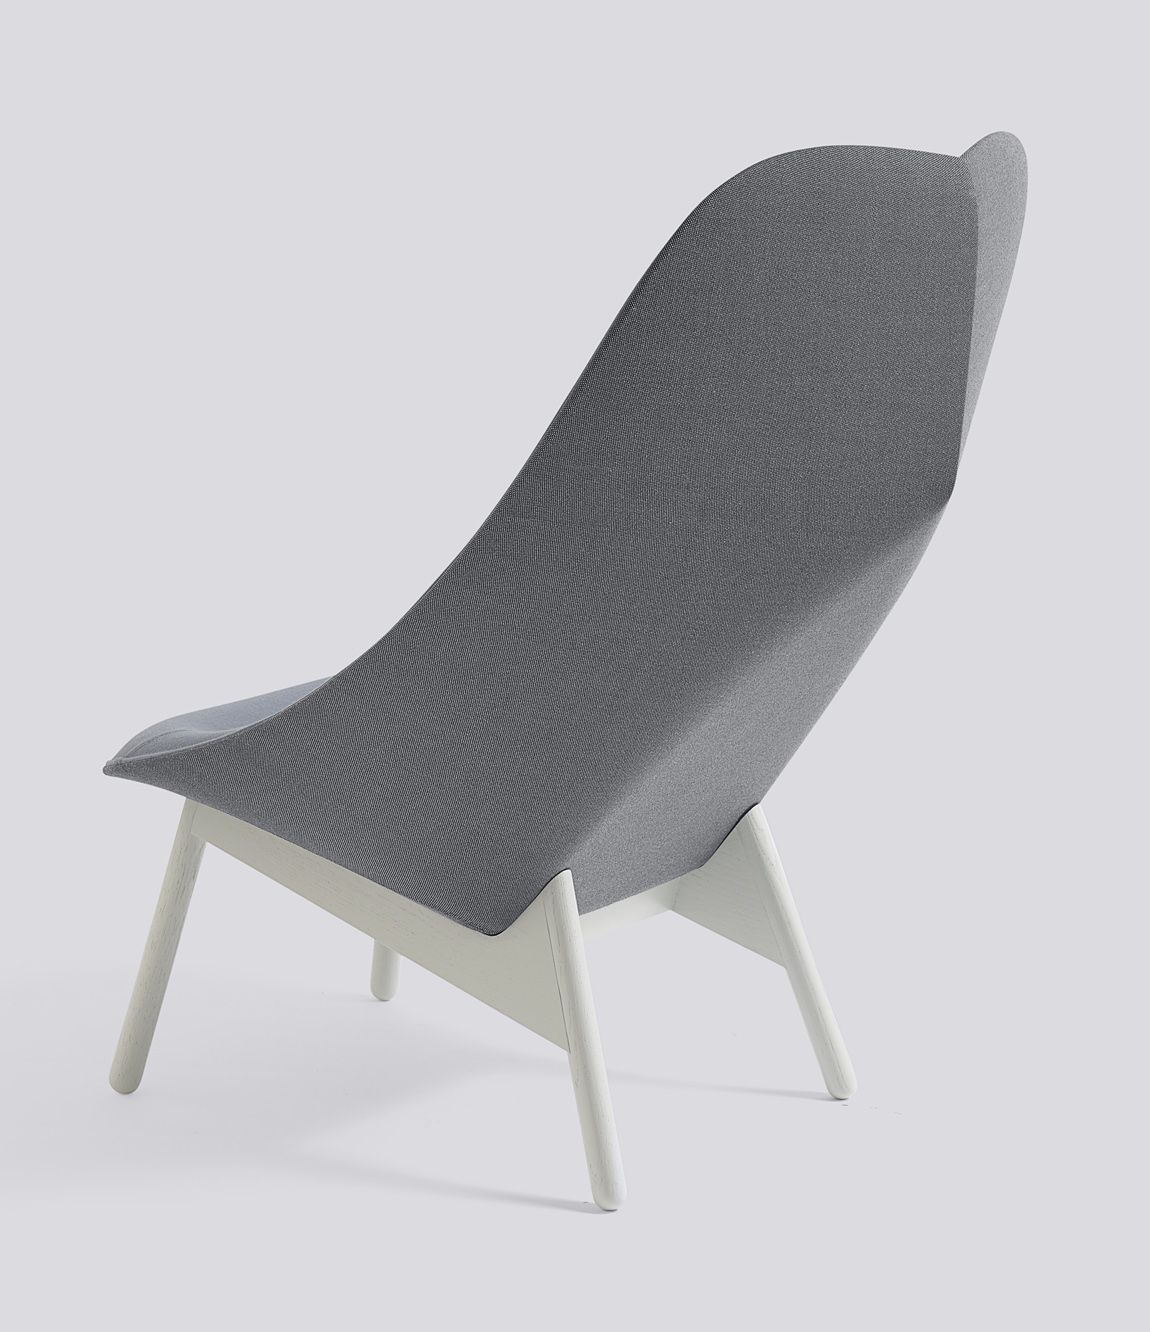 The Uchiwa Lounge Chair Is A Minimalist Design By London Based Designer  Doshi Levien For